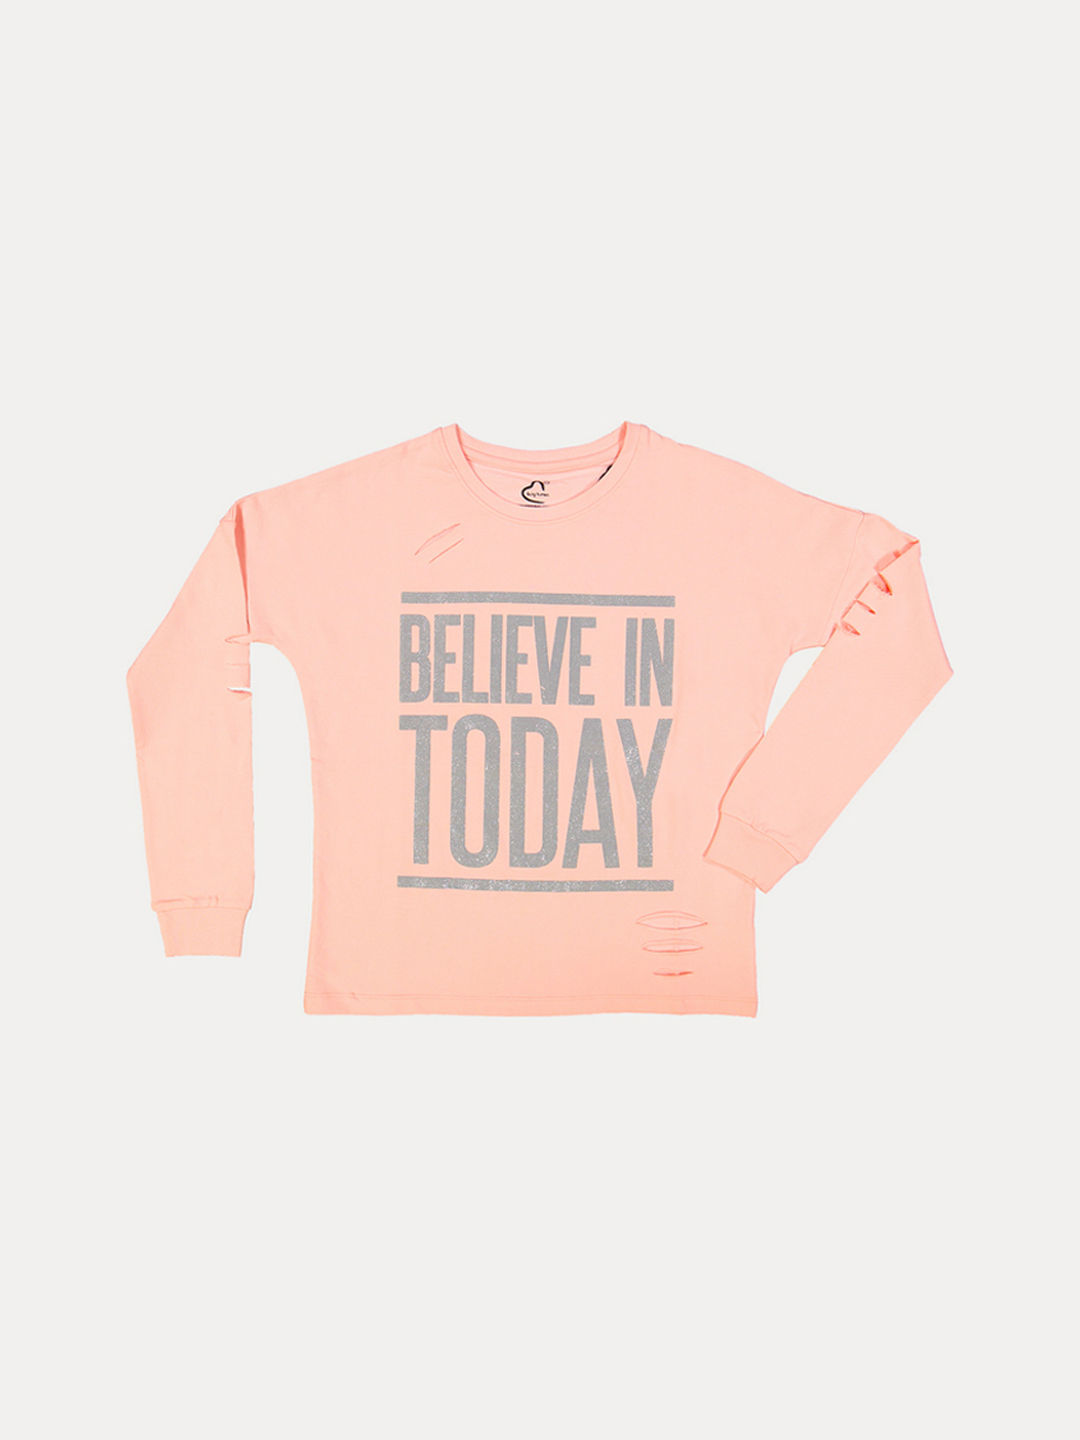 LIGHT PINK PRINTED T-SHIRT